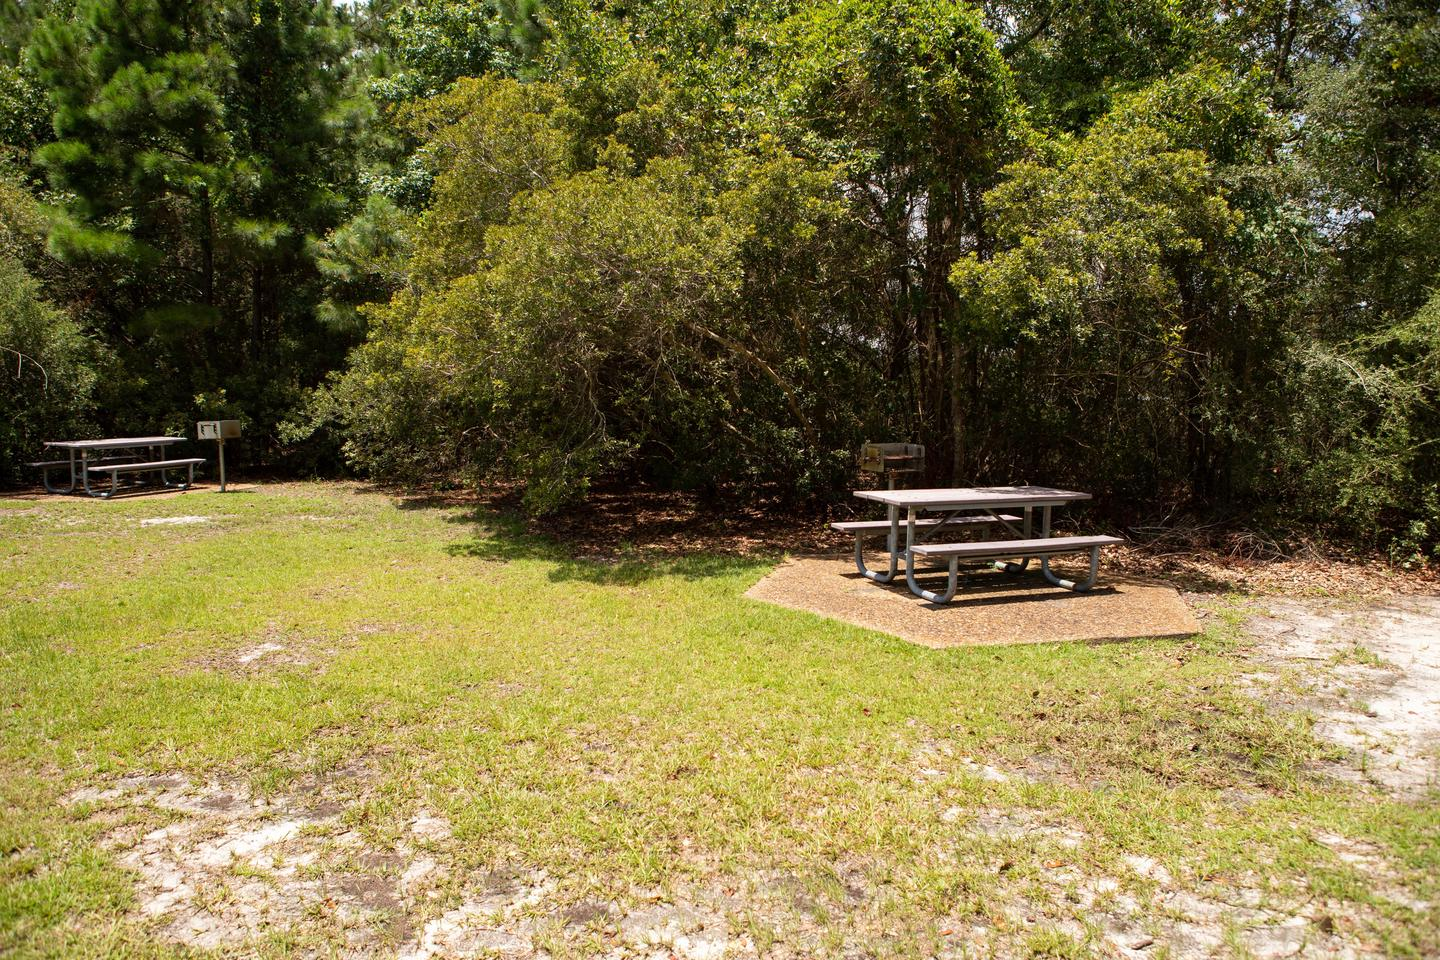 William M. Colmer Visitor Center Picnic TablesEnjoy lunch by the bayou at a picnic table near the visitor center.